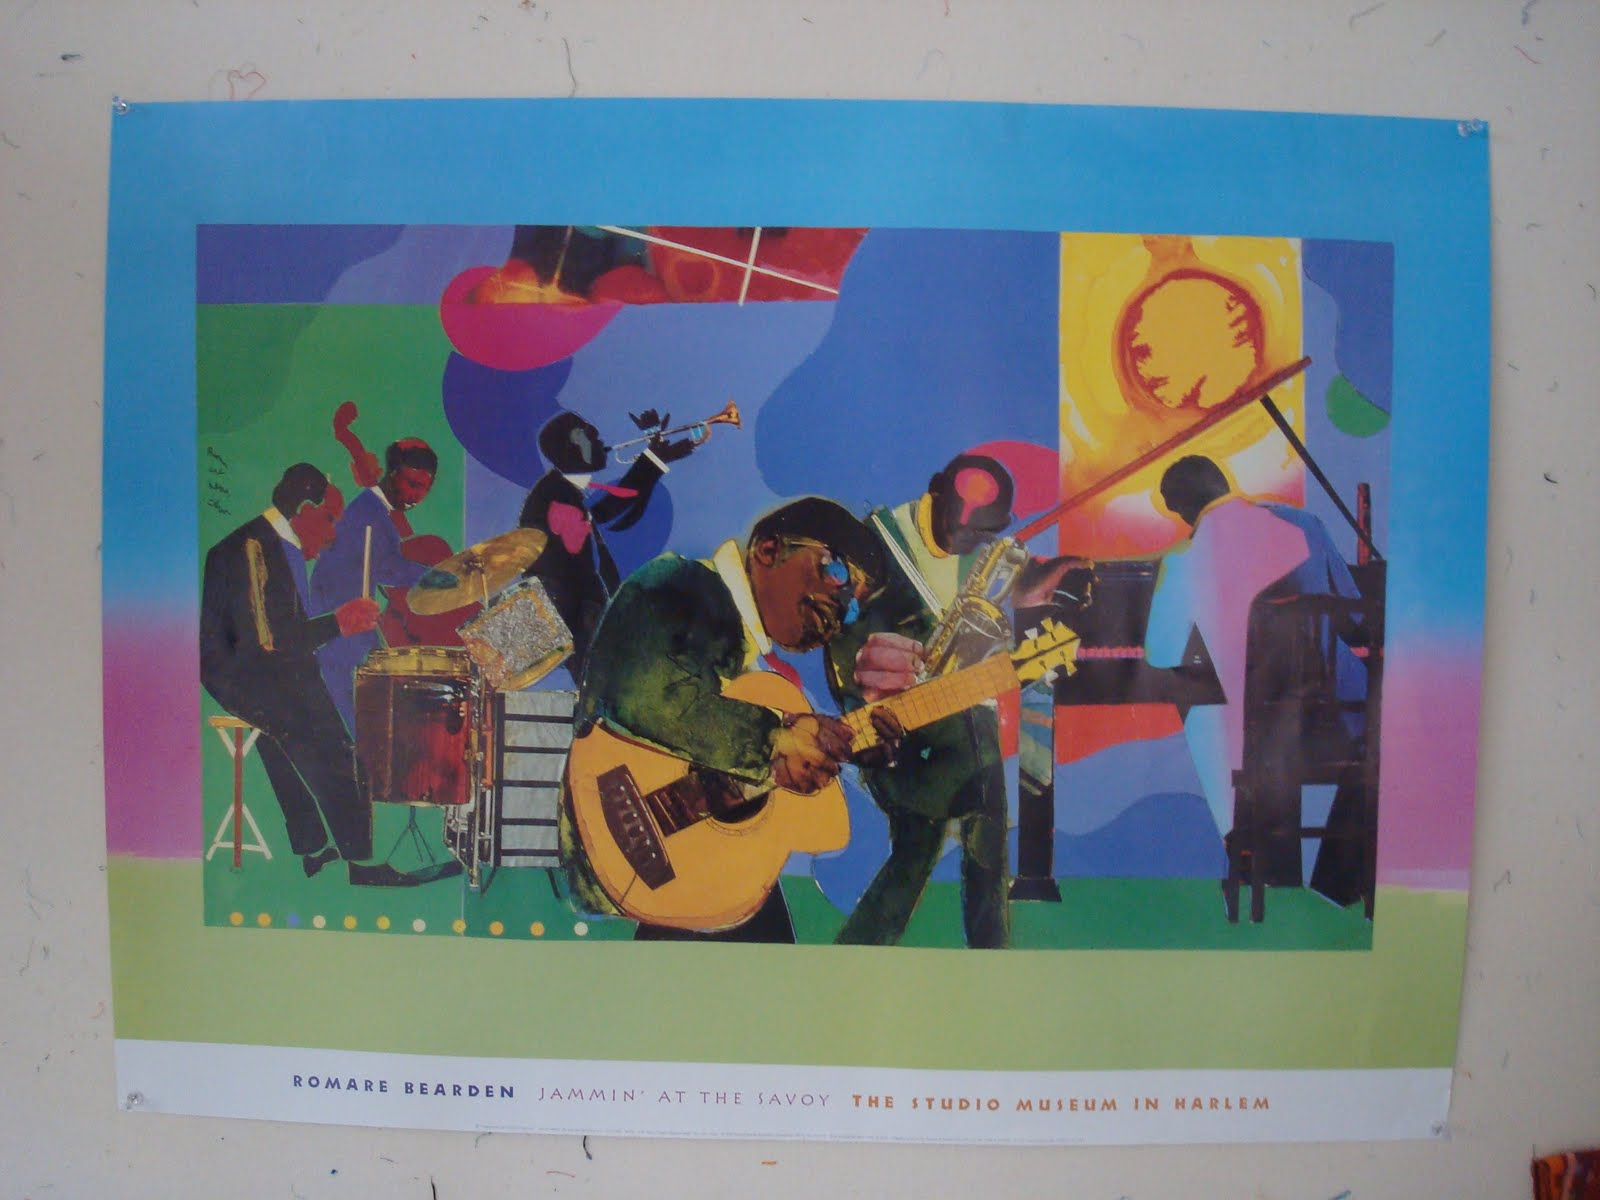 a review of rompre beardens painting jammin at the savoy Profile/part ii, the thirties: artist with painting and model, 1981 by romare bearden: this profile/part ii, the thirties: artist with painting and model, 1981 fine art print and related.